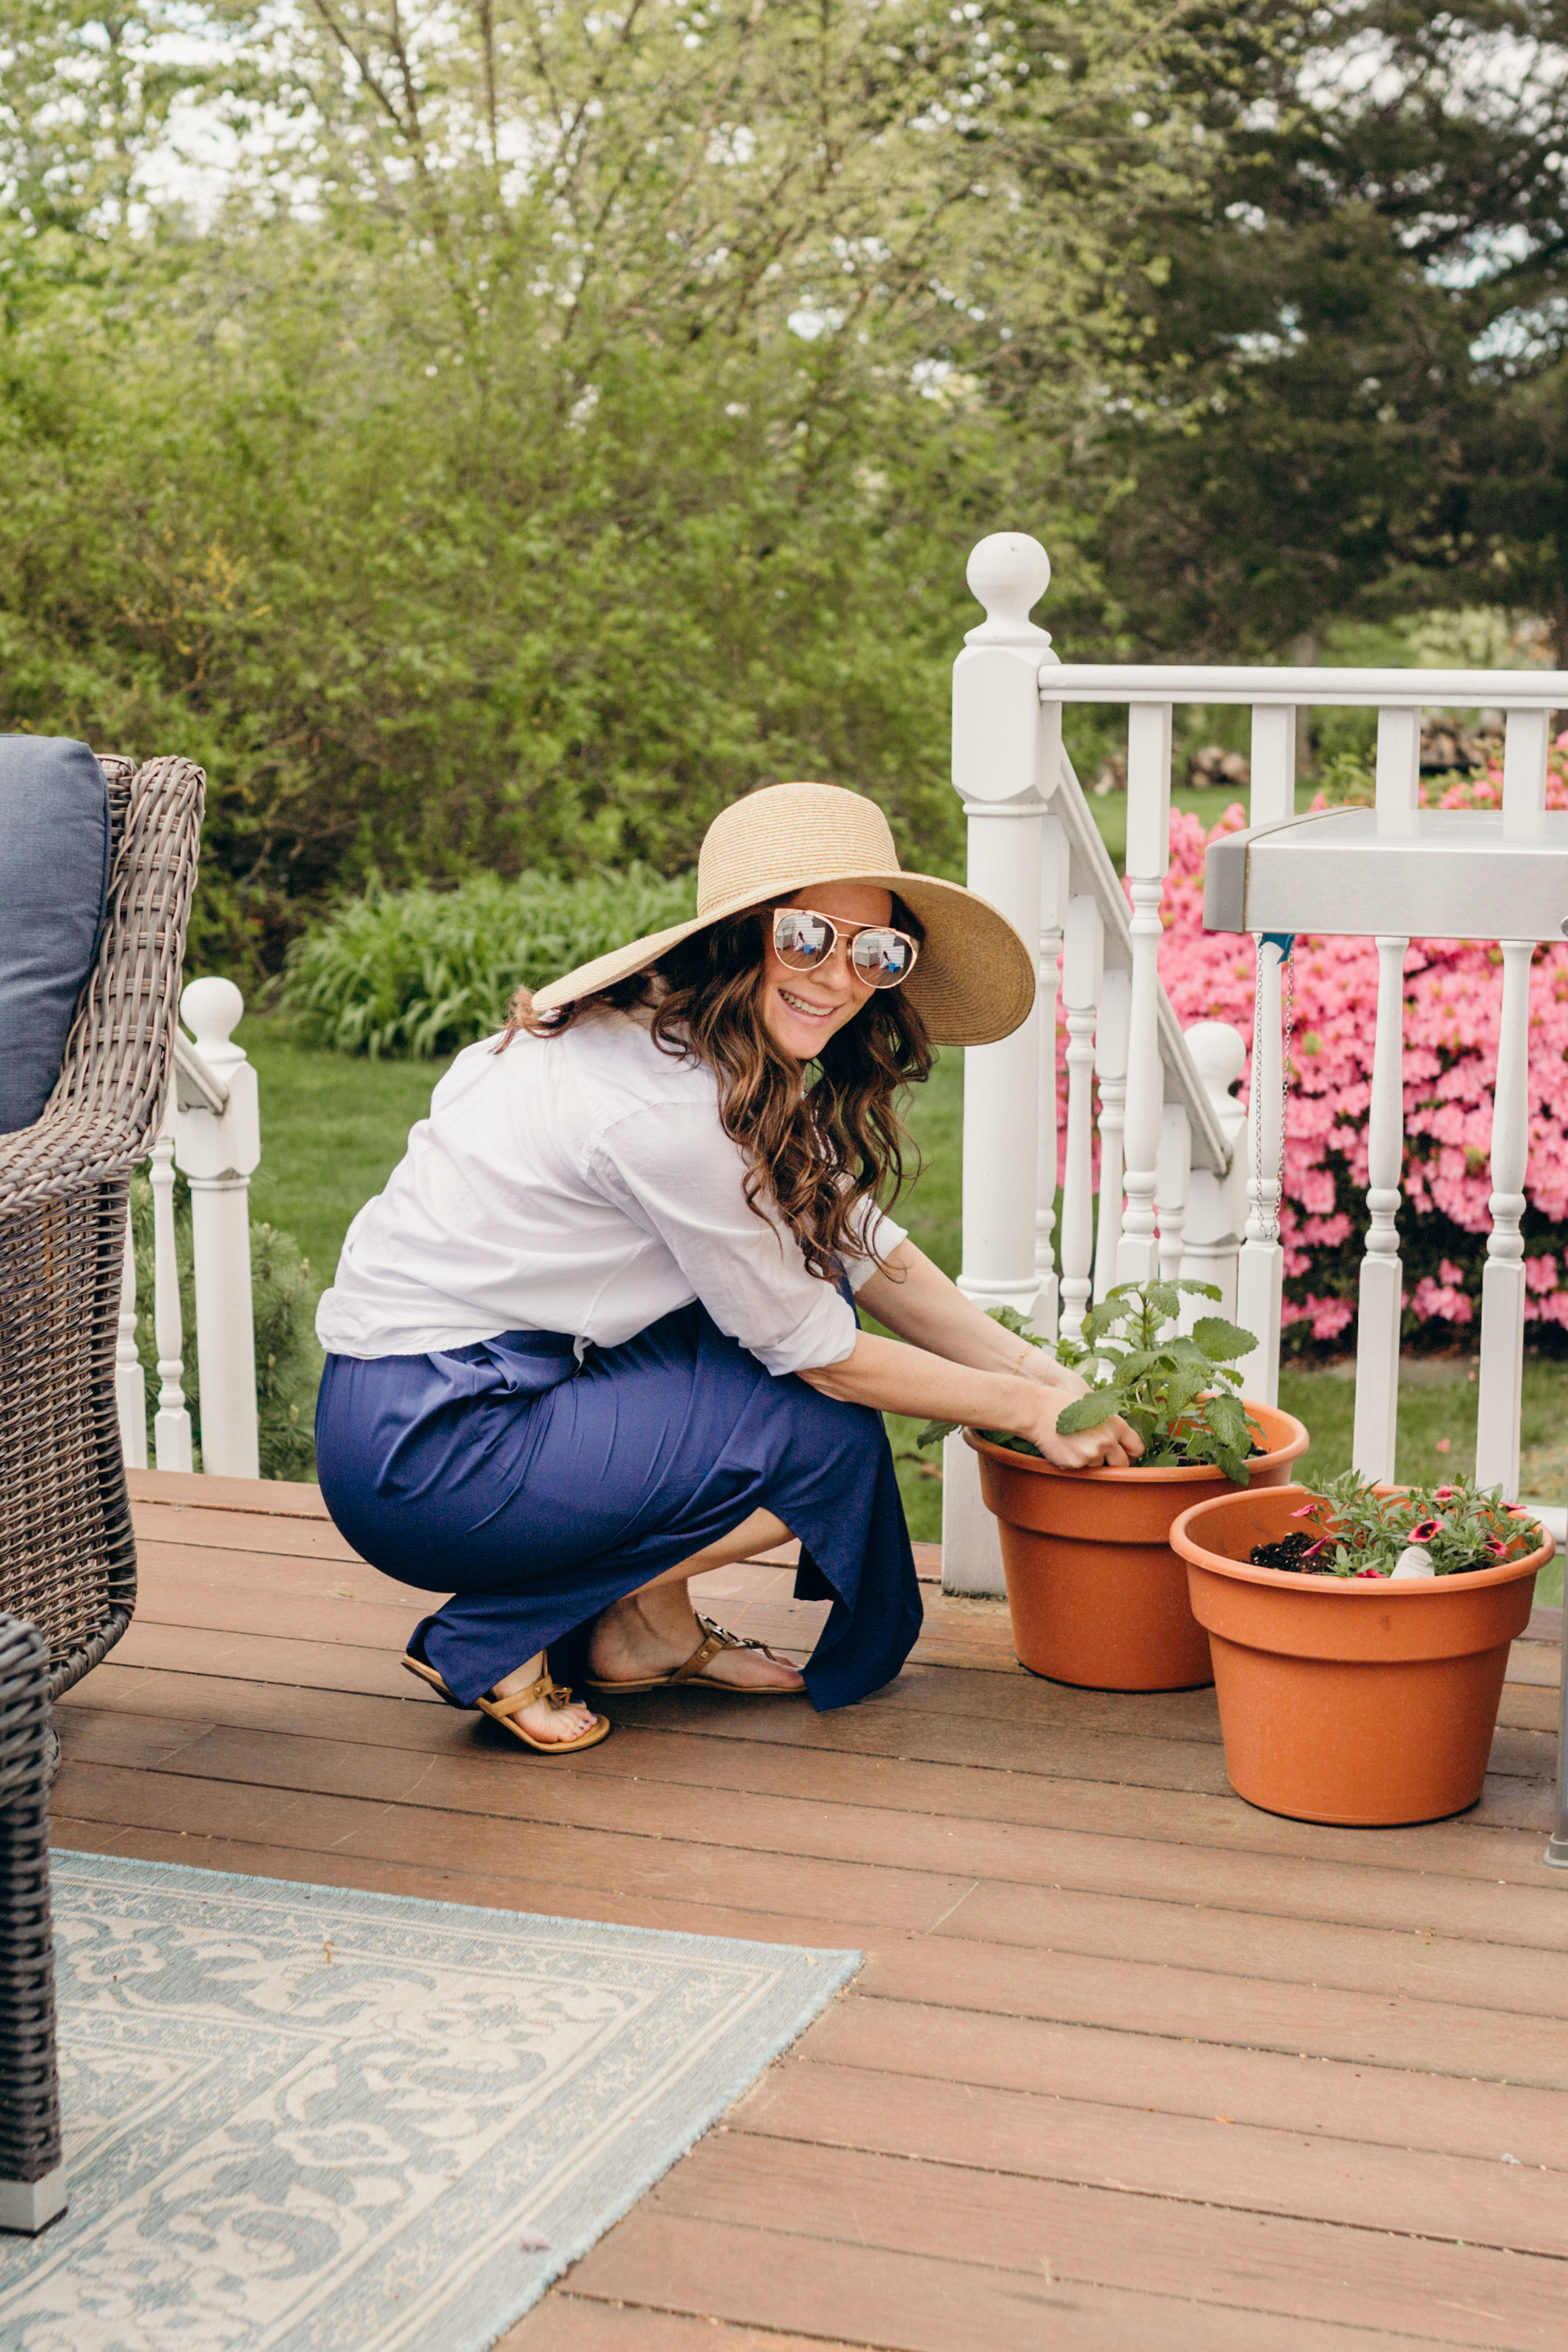 Woman planting flowers in upf clothing and sun hat